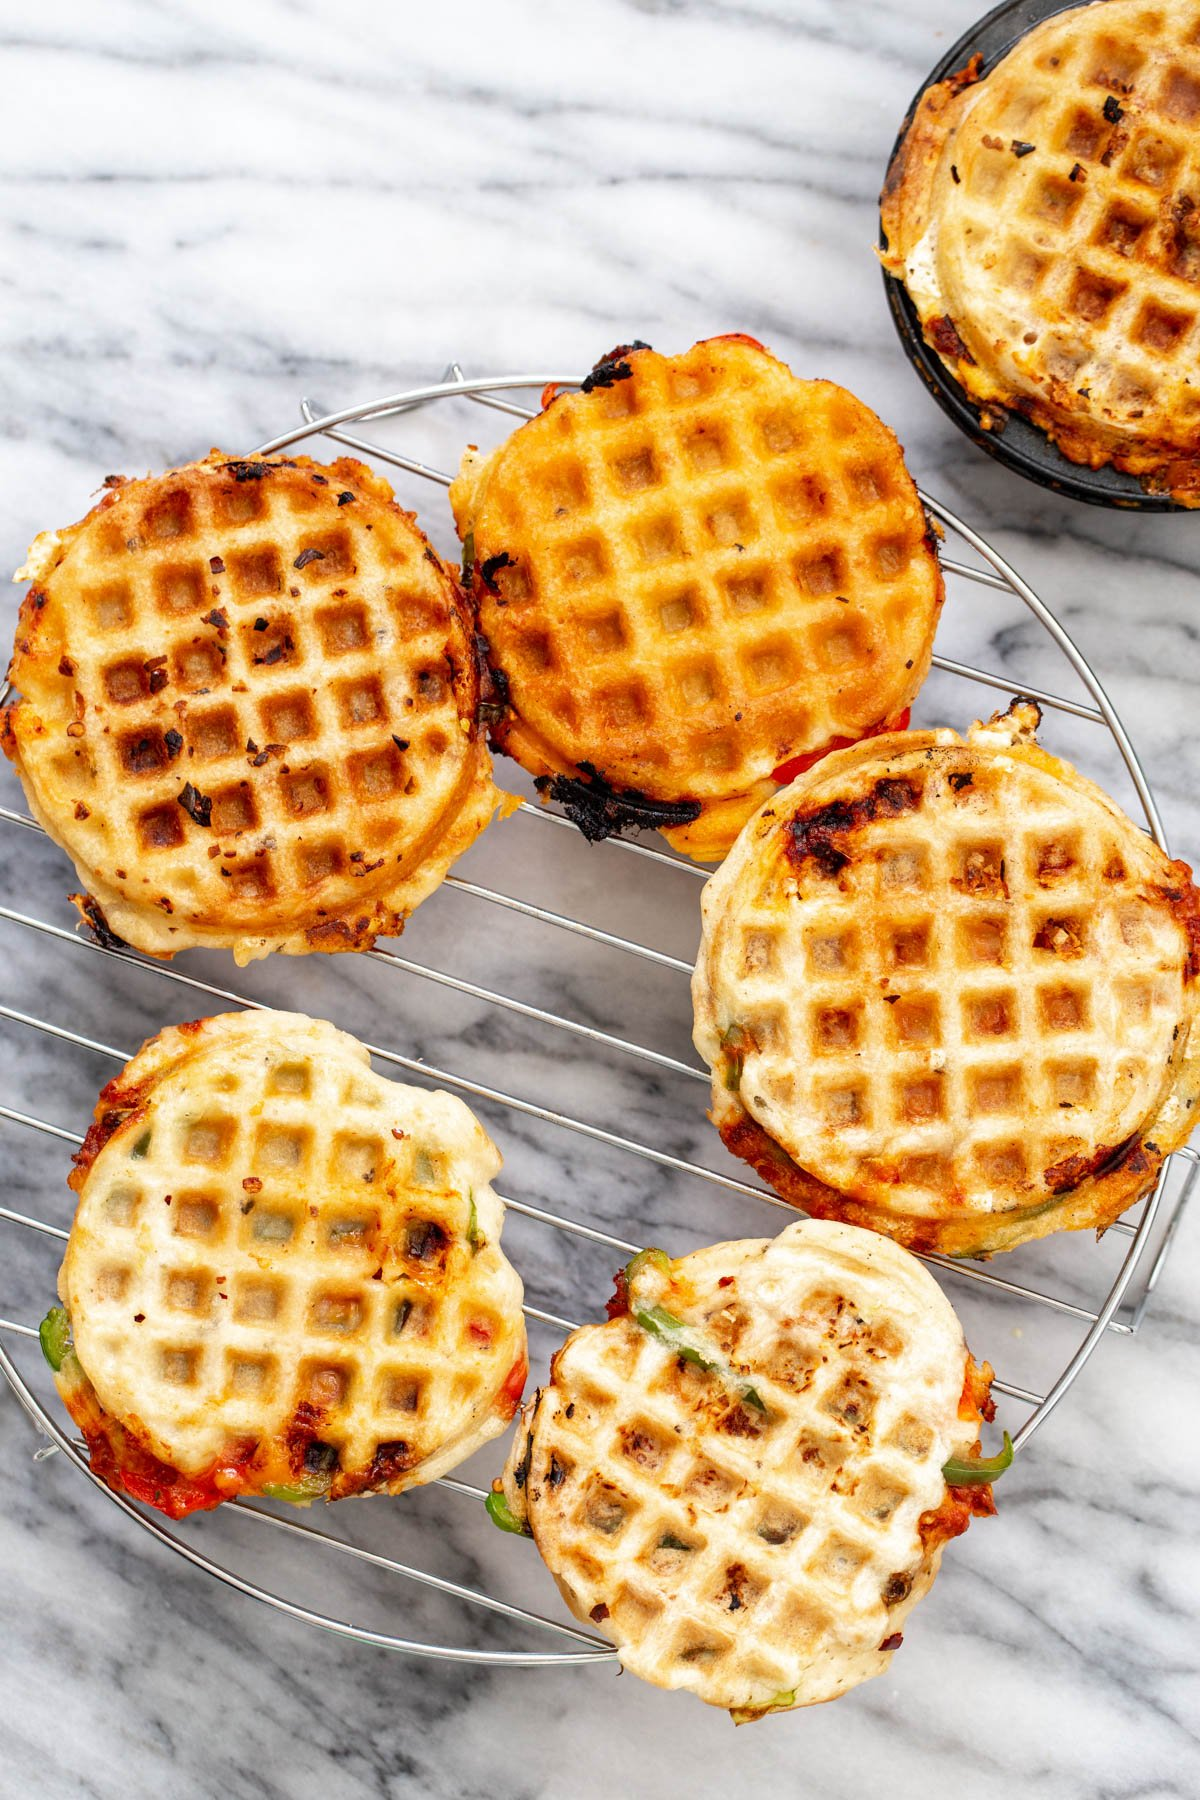 vegan pizza waffles chilling on a grid